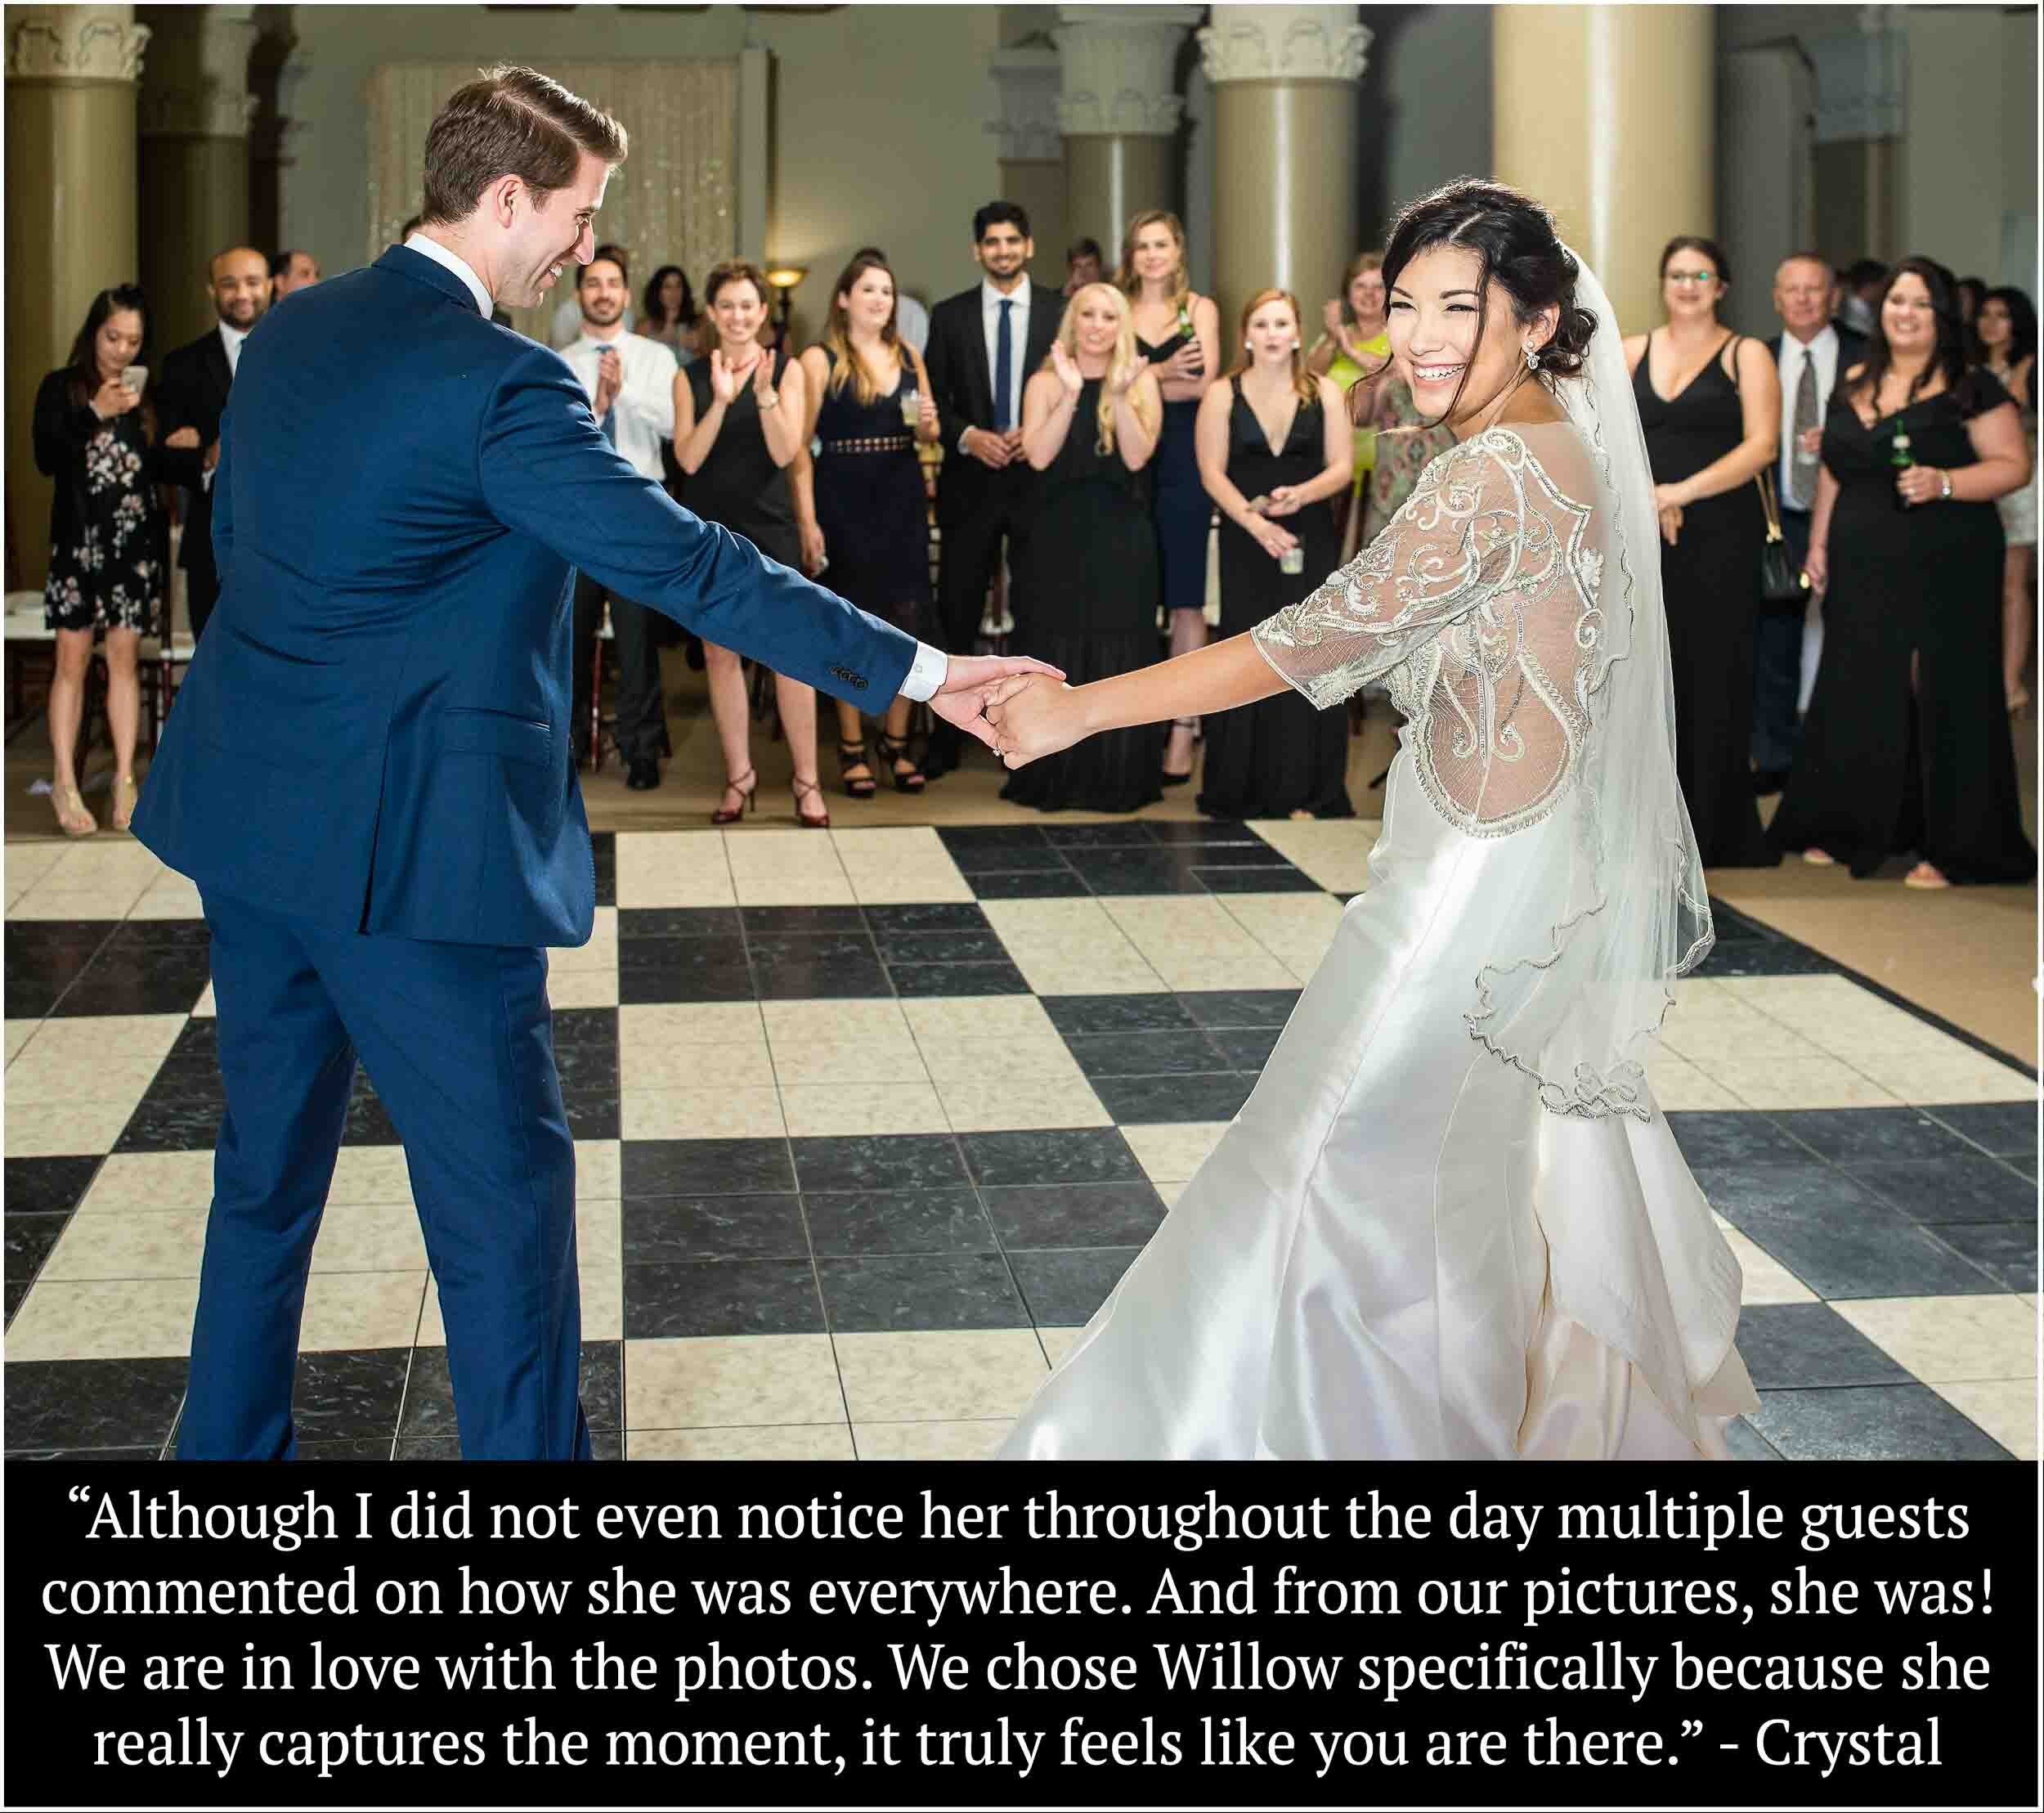 90-Federal-Ballroom-New-Orleans-Wedding-Reception-Photo-Willows-World-Photo-Edit-Edit.jpg